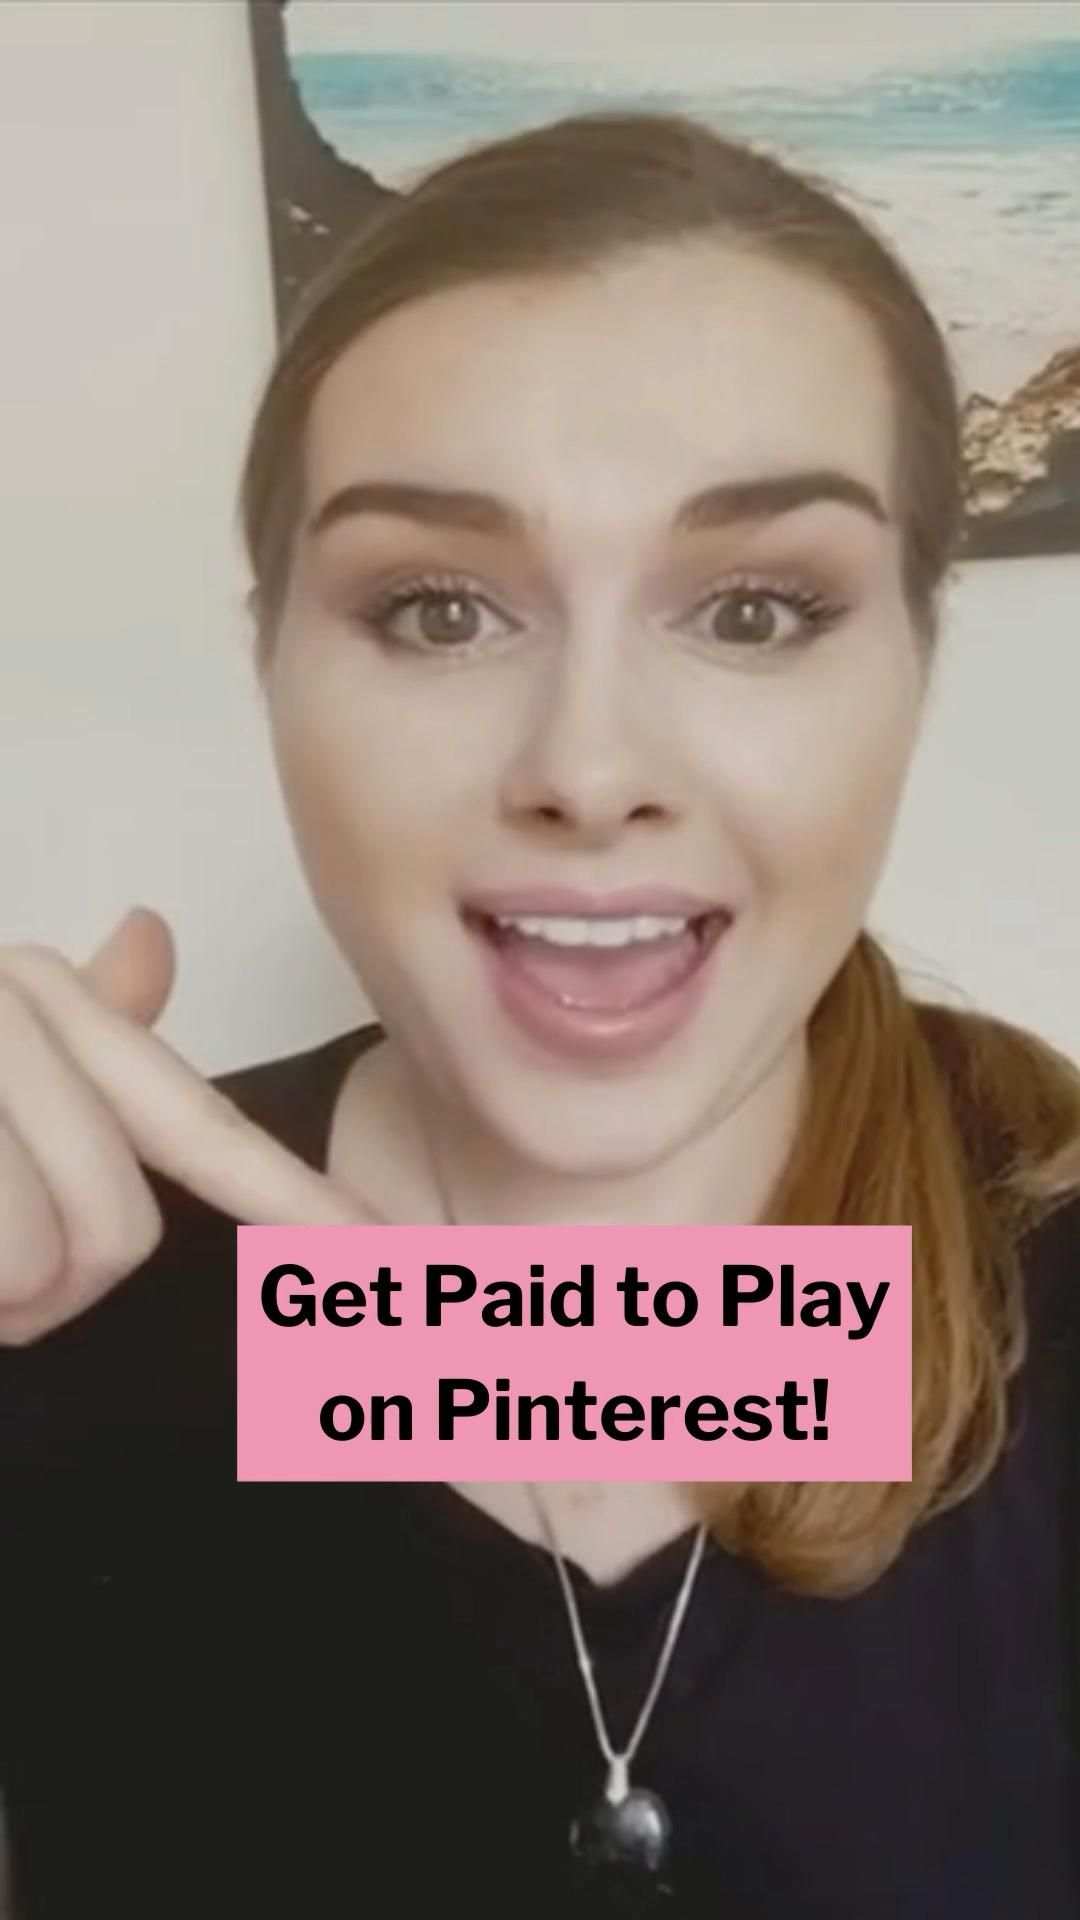 Get Paid to Play on Pinterest!